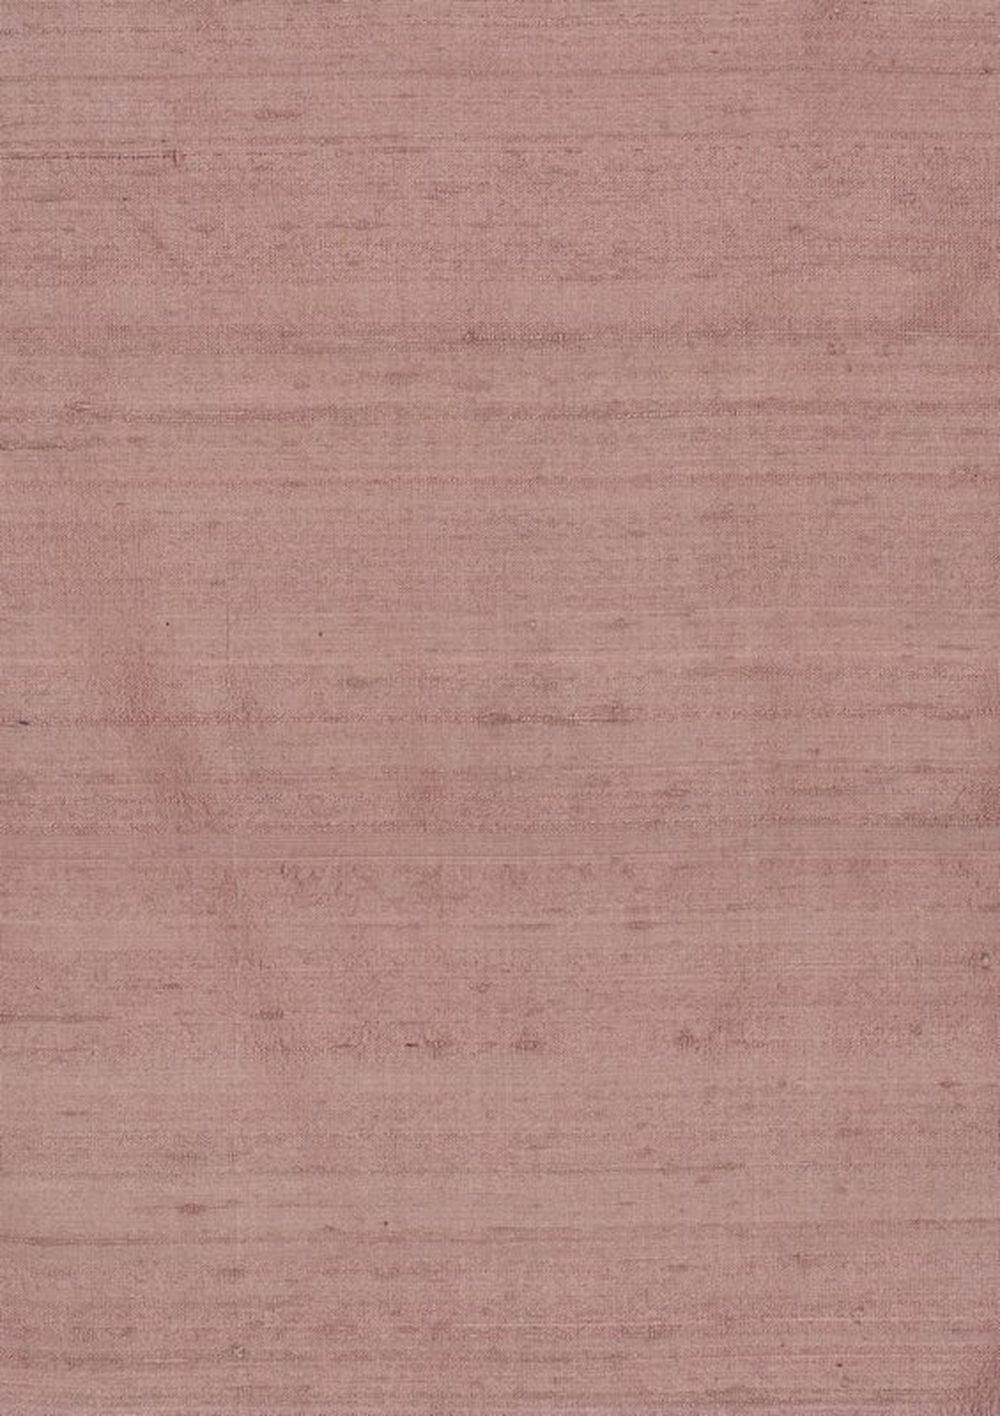 Photo of the fabric Indulgence Shrimp-196 swatch by Zepel. Use for Curtains. Style of Plain